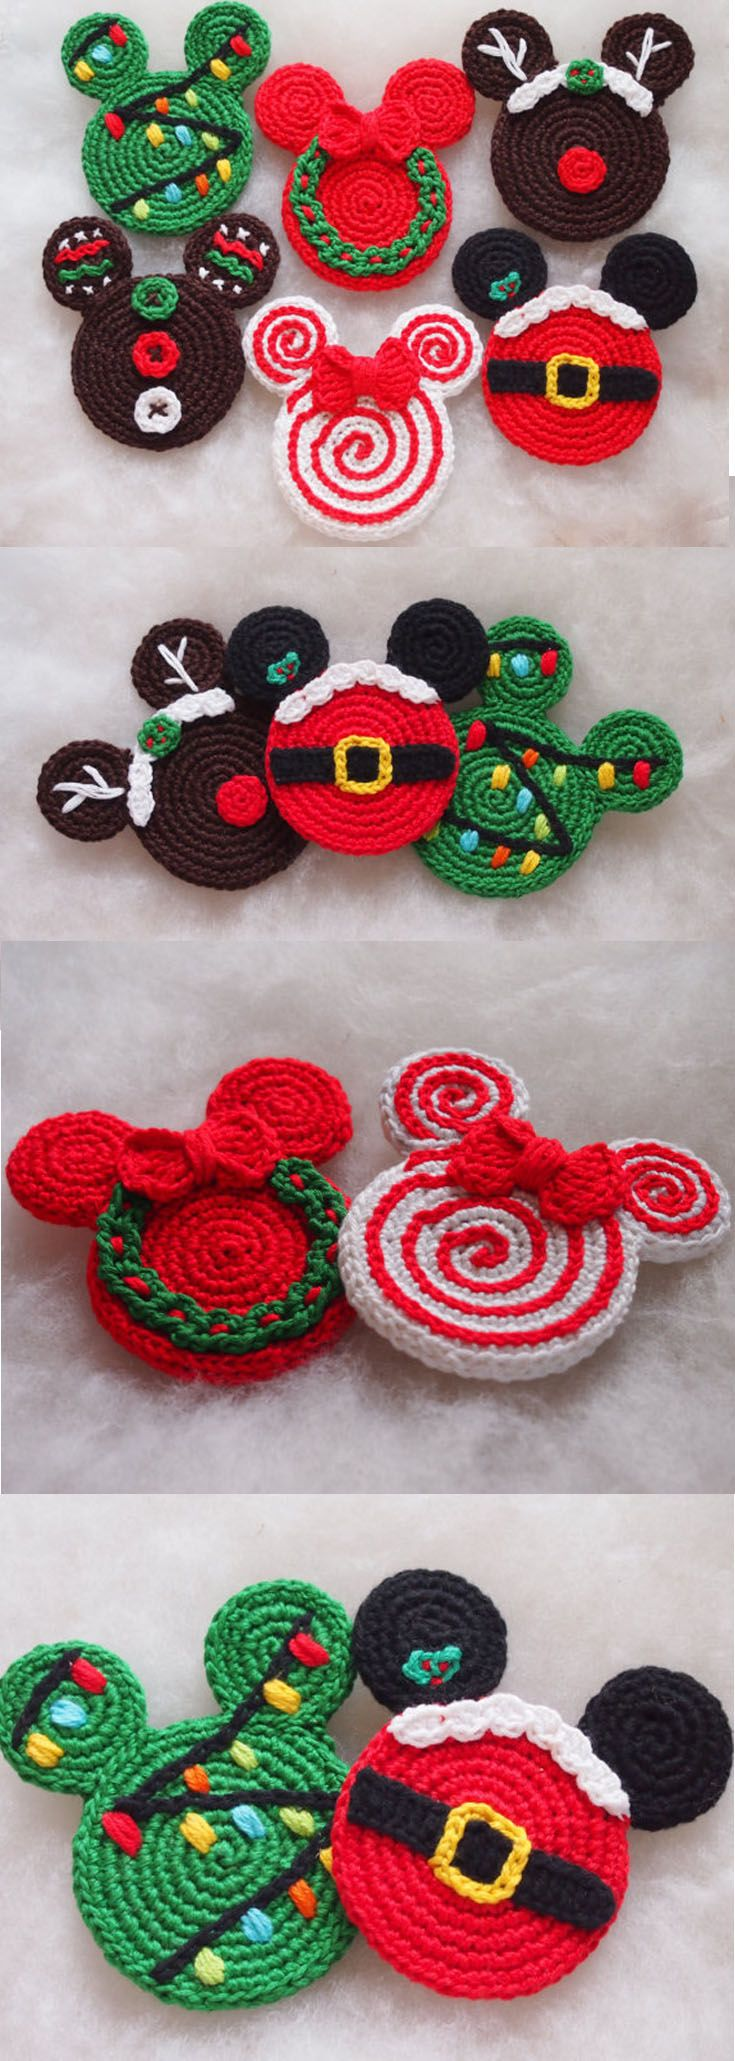 "Check out these amazing Mickey Mouse inspired crochet Christmas ornaments, aren't they adorable?!? There's a wreath, a ""Christmas tree"" with lights, gingerbread Mickey, a Santa Claus Mickey, and even a Rudolph Mickey! These would look amazing on your Disney Christmas tree, or also strung together as a Christmas garland. I super love these! (affiliate link)"